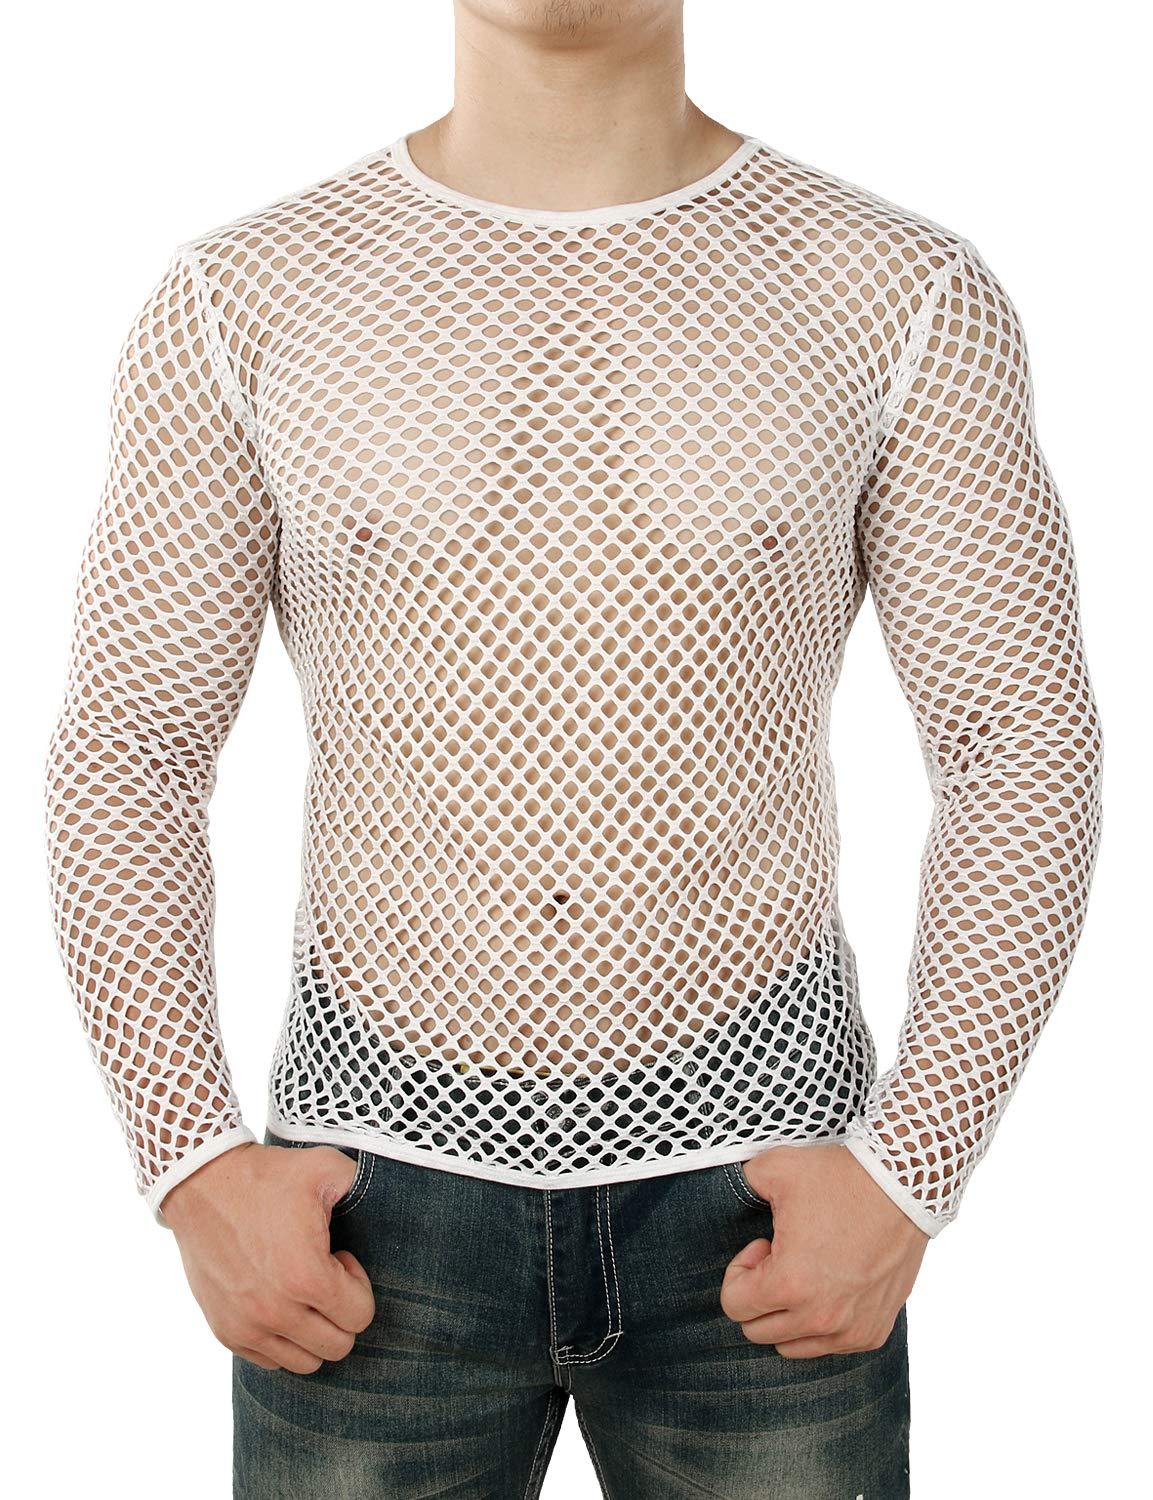 JOGAL Men's Mesh Fishnet Fitted Long Sleeve Muscle Top